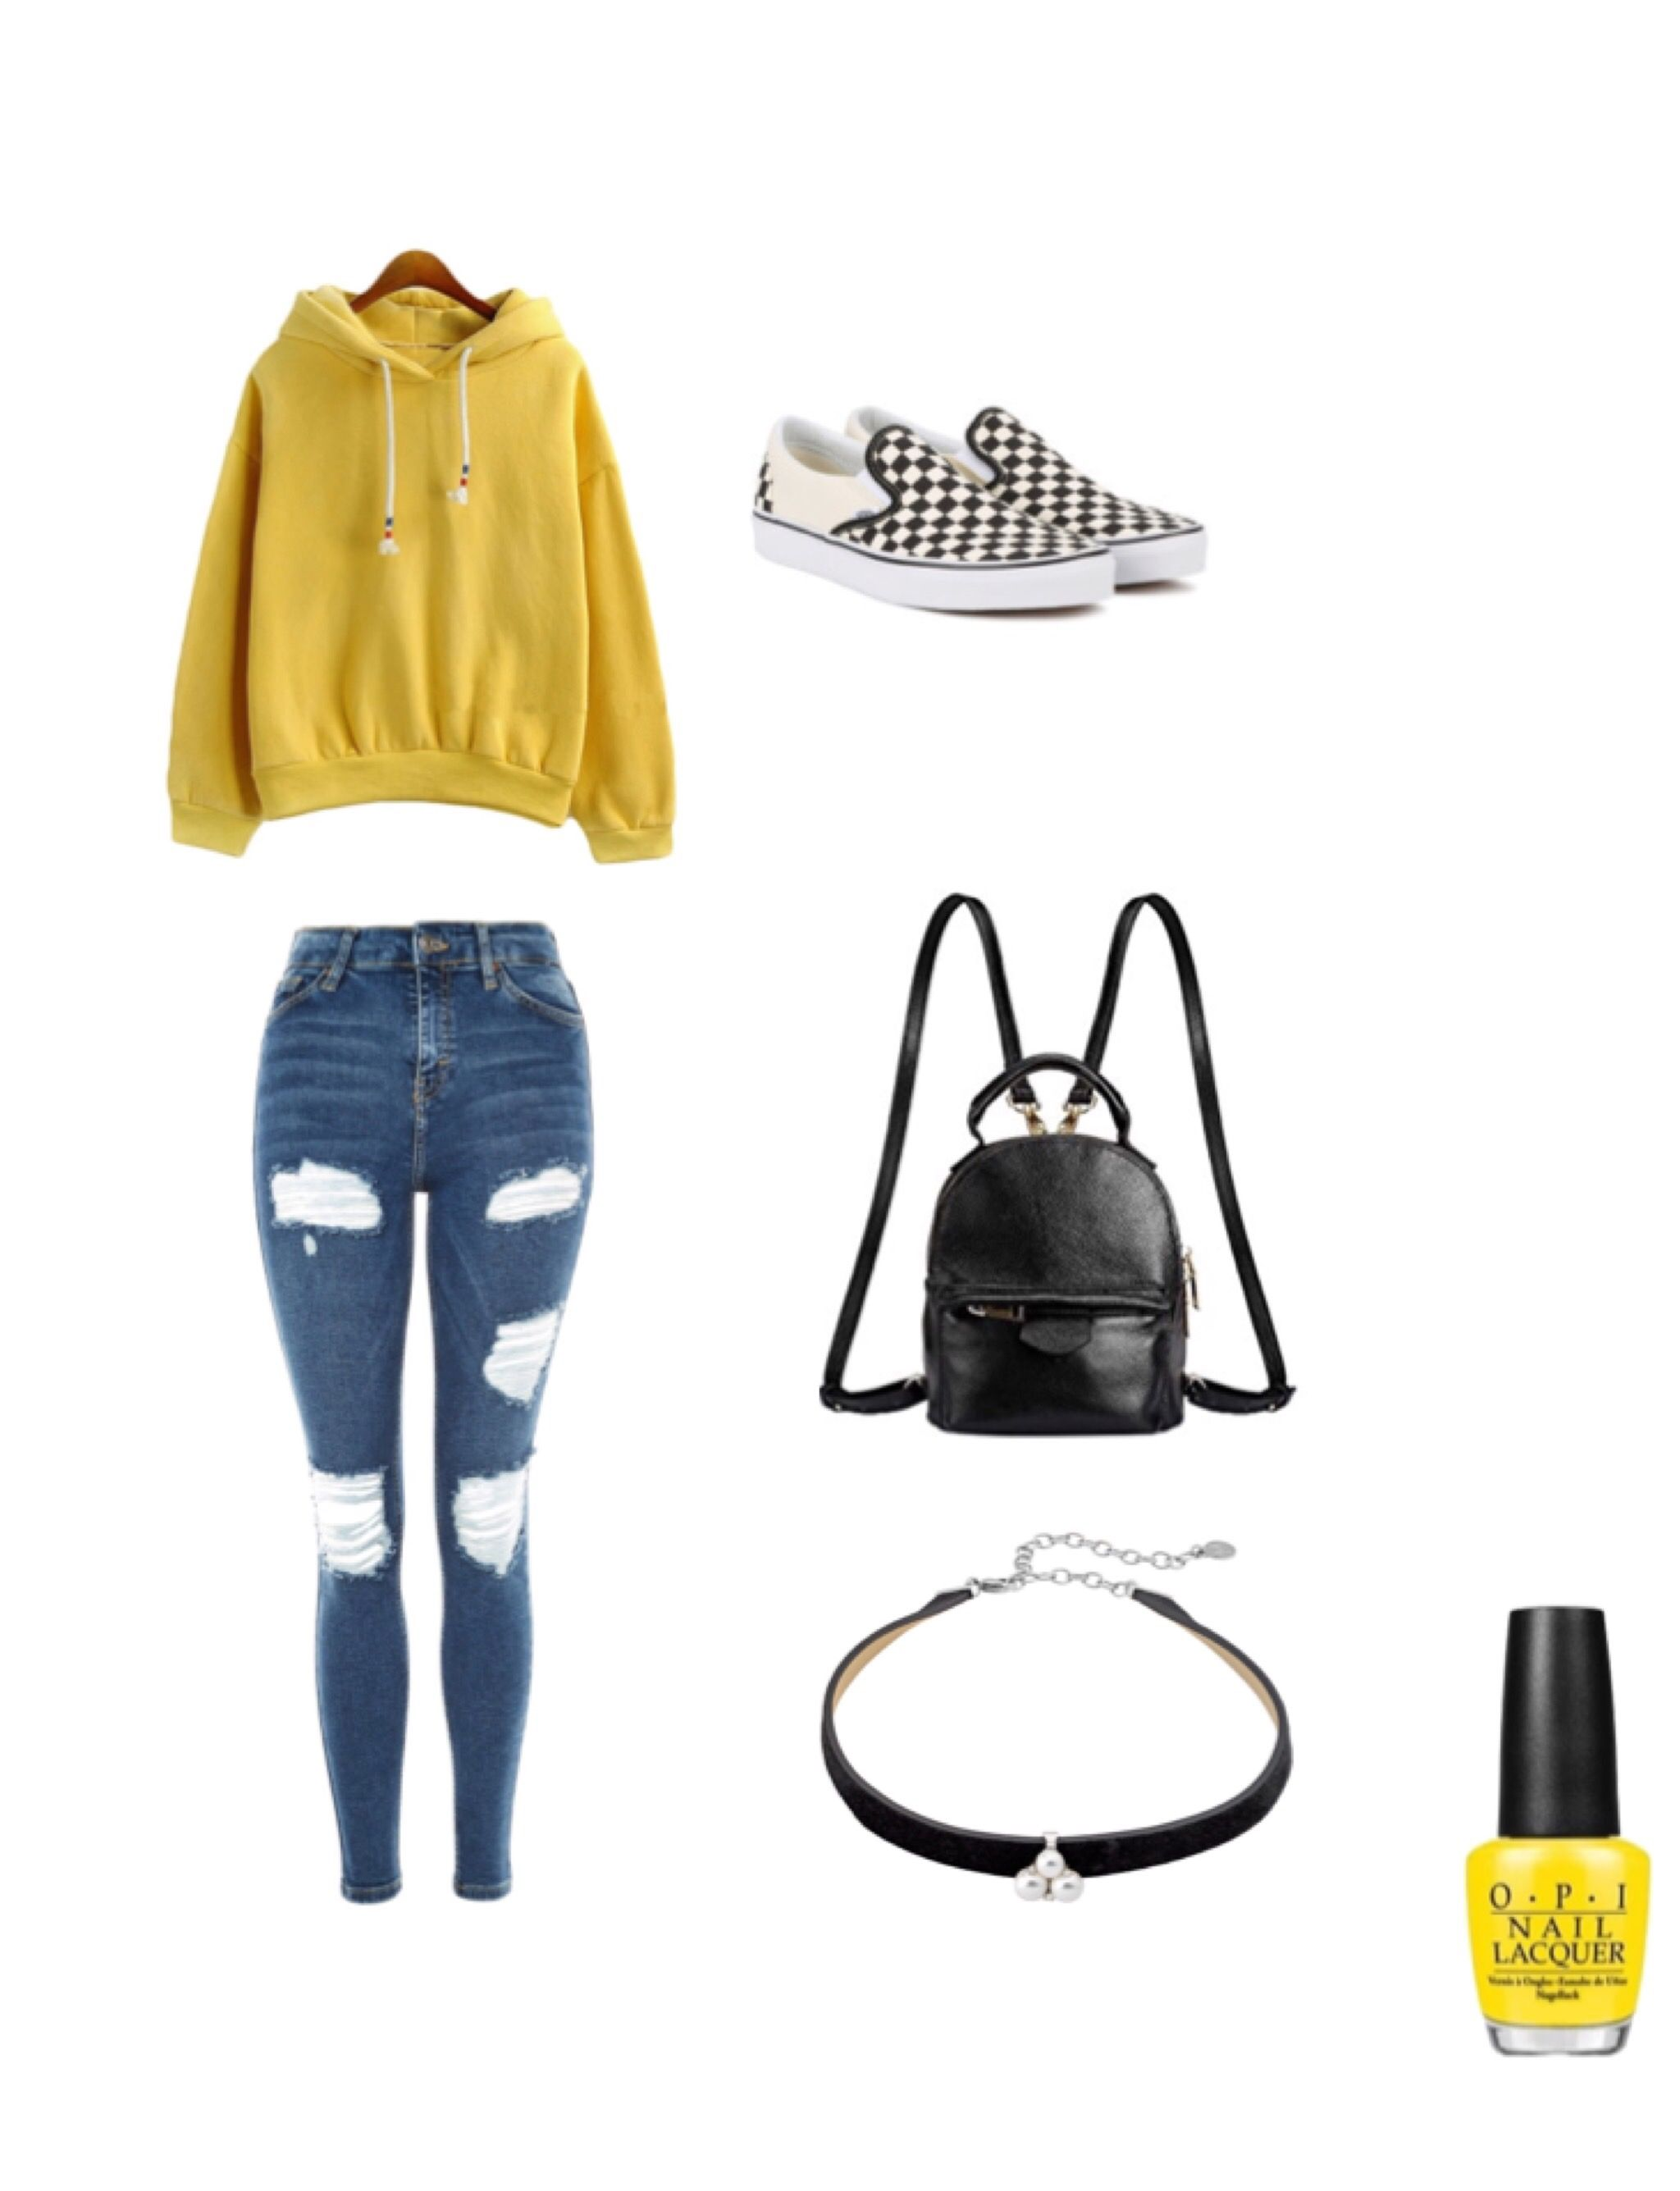 outfit ideas. checkerboard vans. yellow